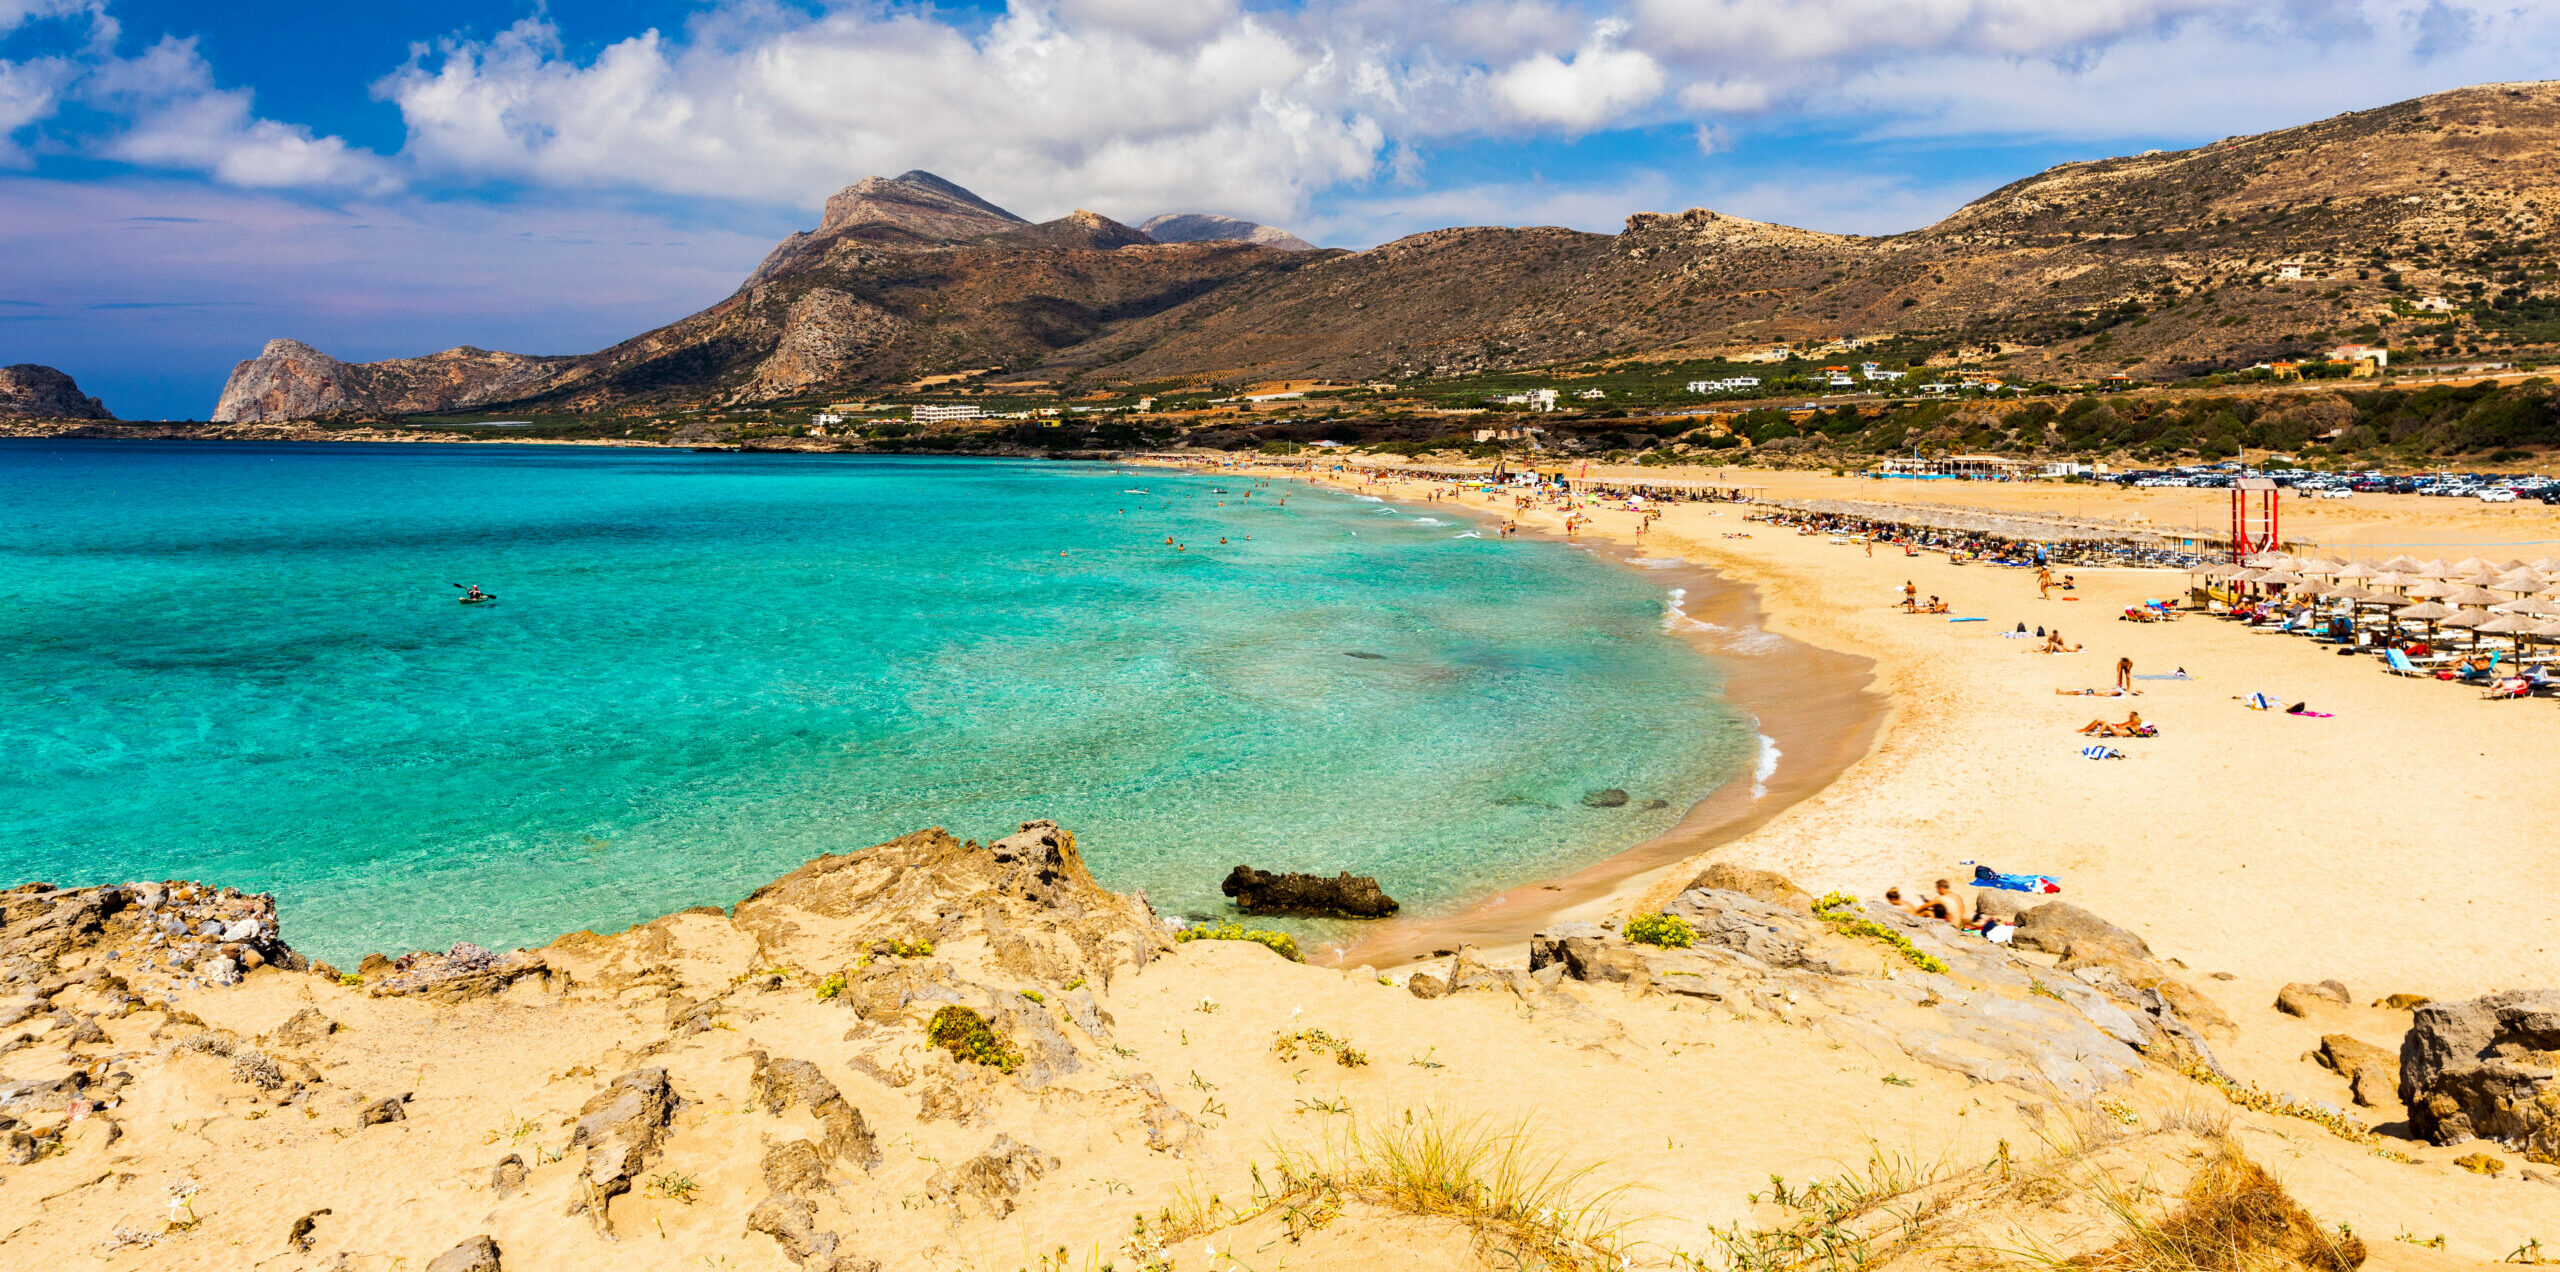 Falasarna: the stunning beach that was once an ancient port